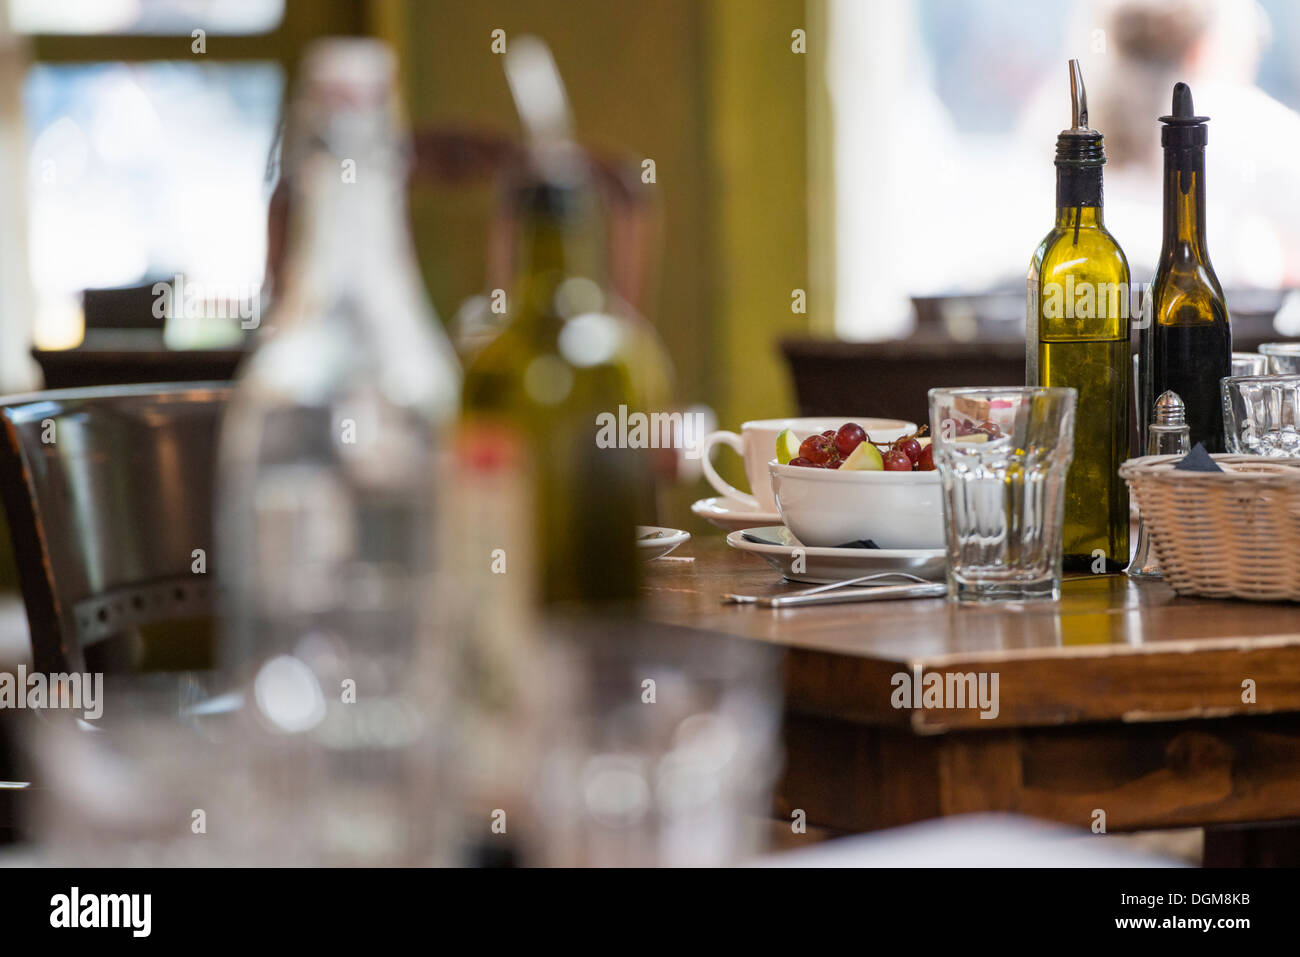 Interior of a city coffee shop or cafe. Tables laid for meals. - Stock Image